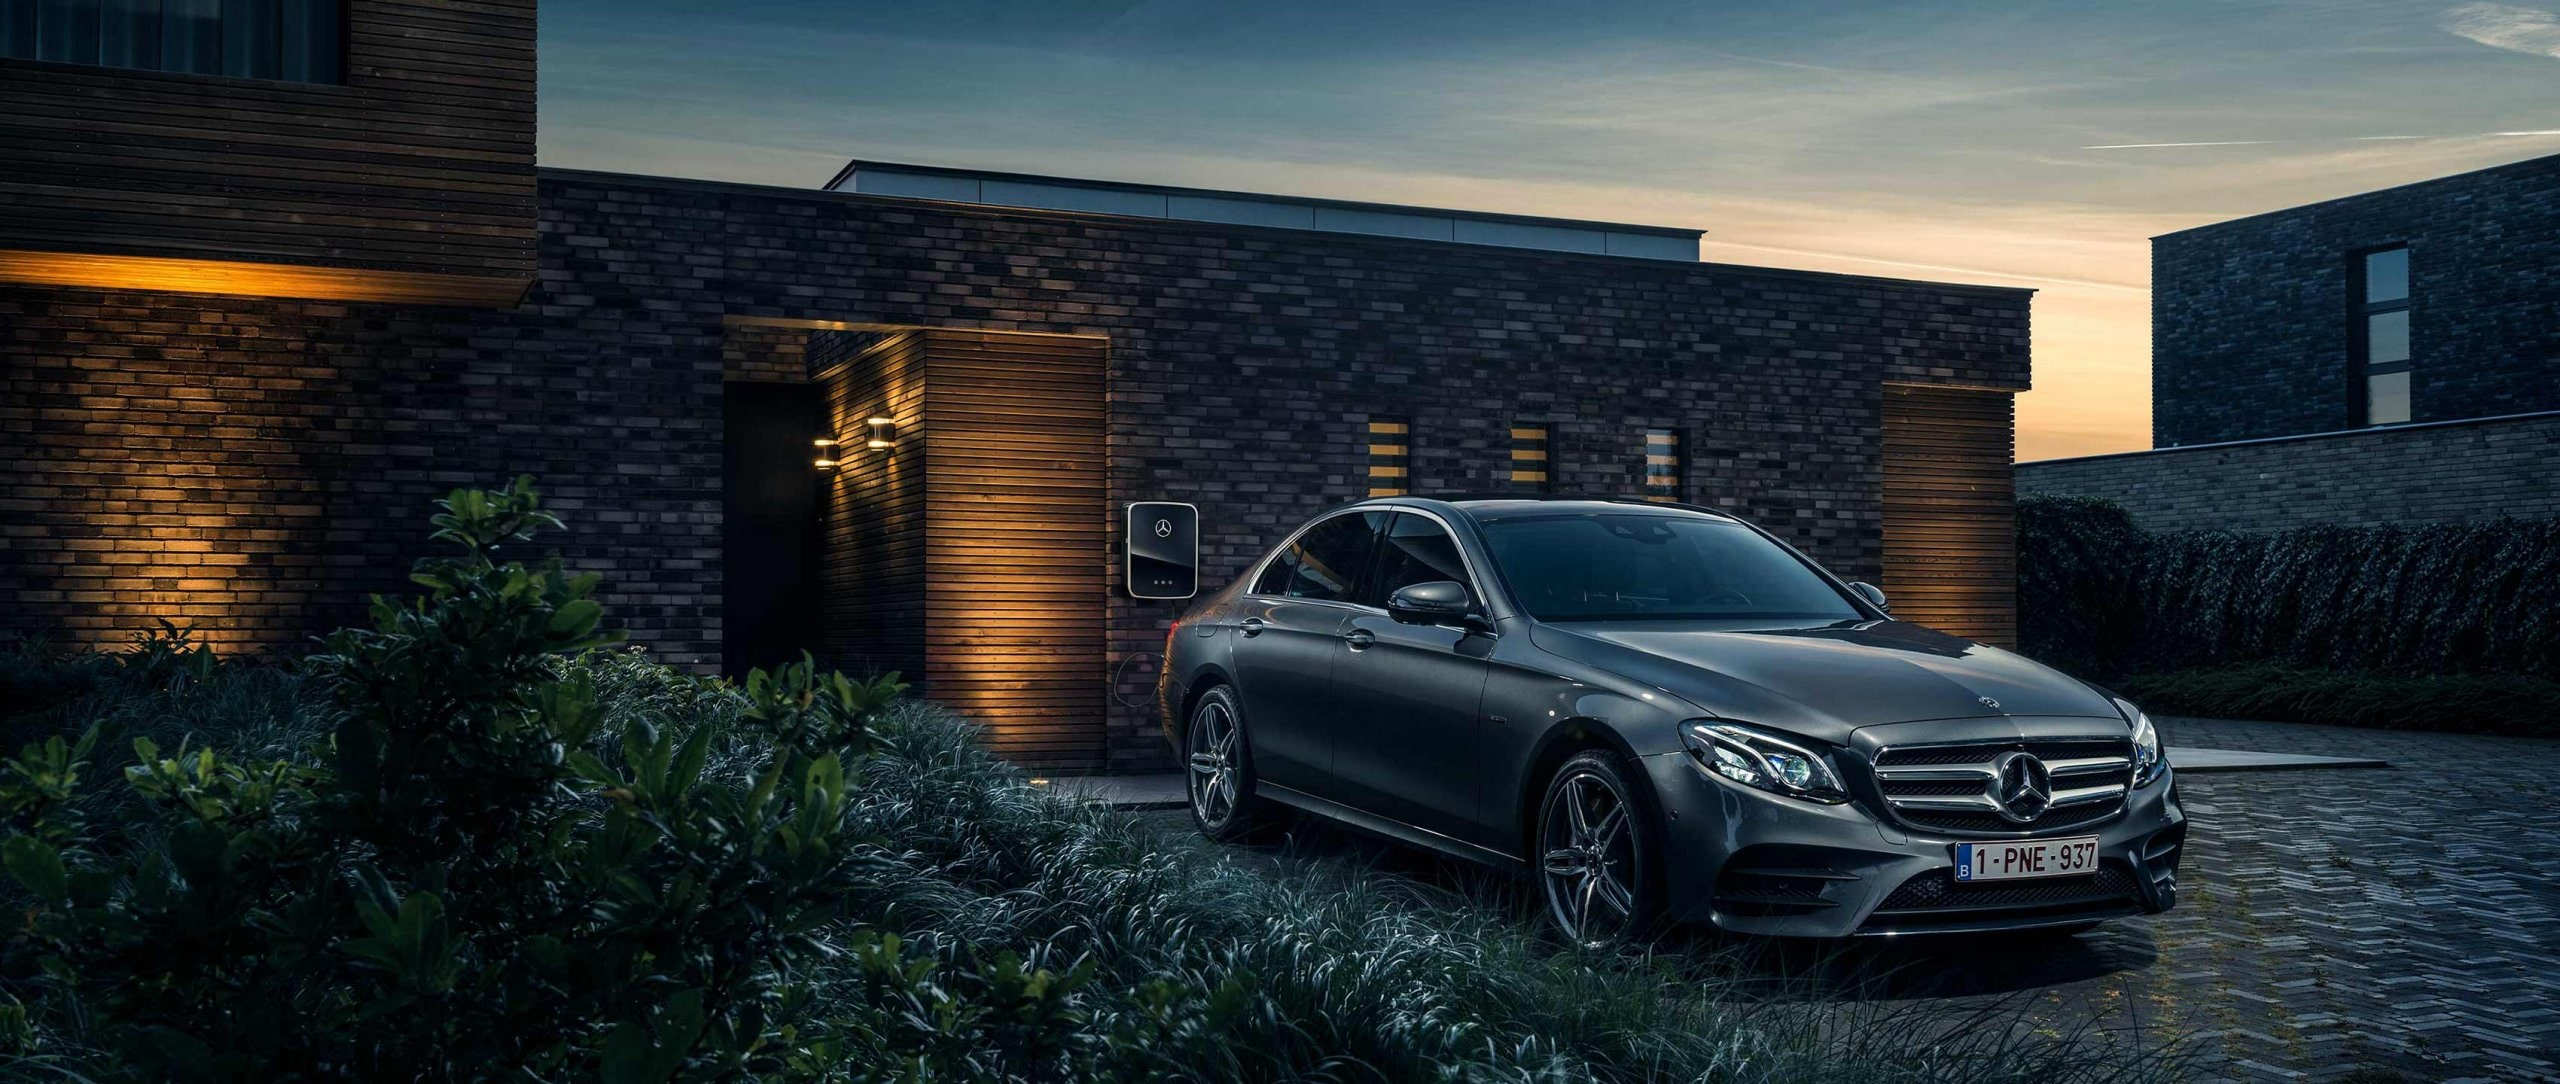 The Mercedes-Benz E 350 e (W 213) plug-in hybrid with state-of-the-art technology, high-quality materials and a forward-looking drive concept in front of a private house in Eindhoven.